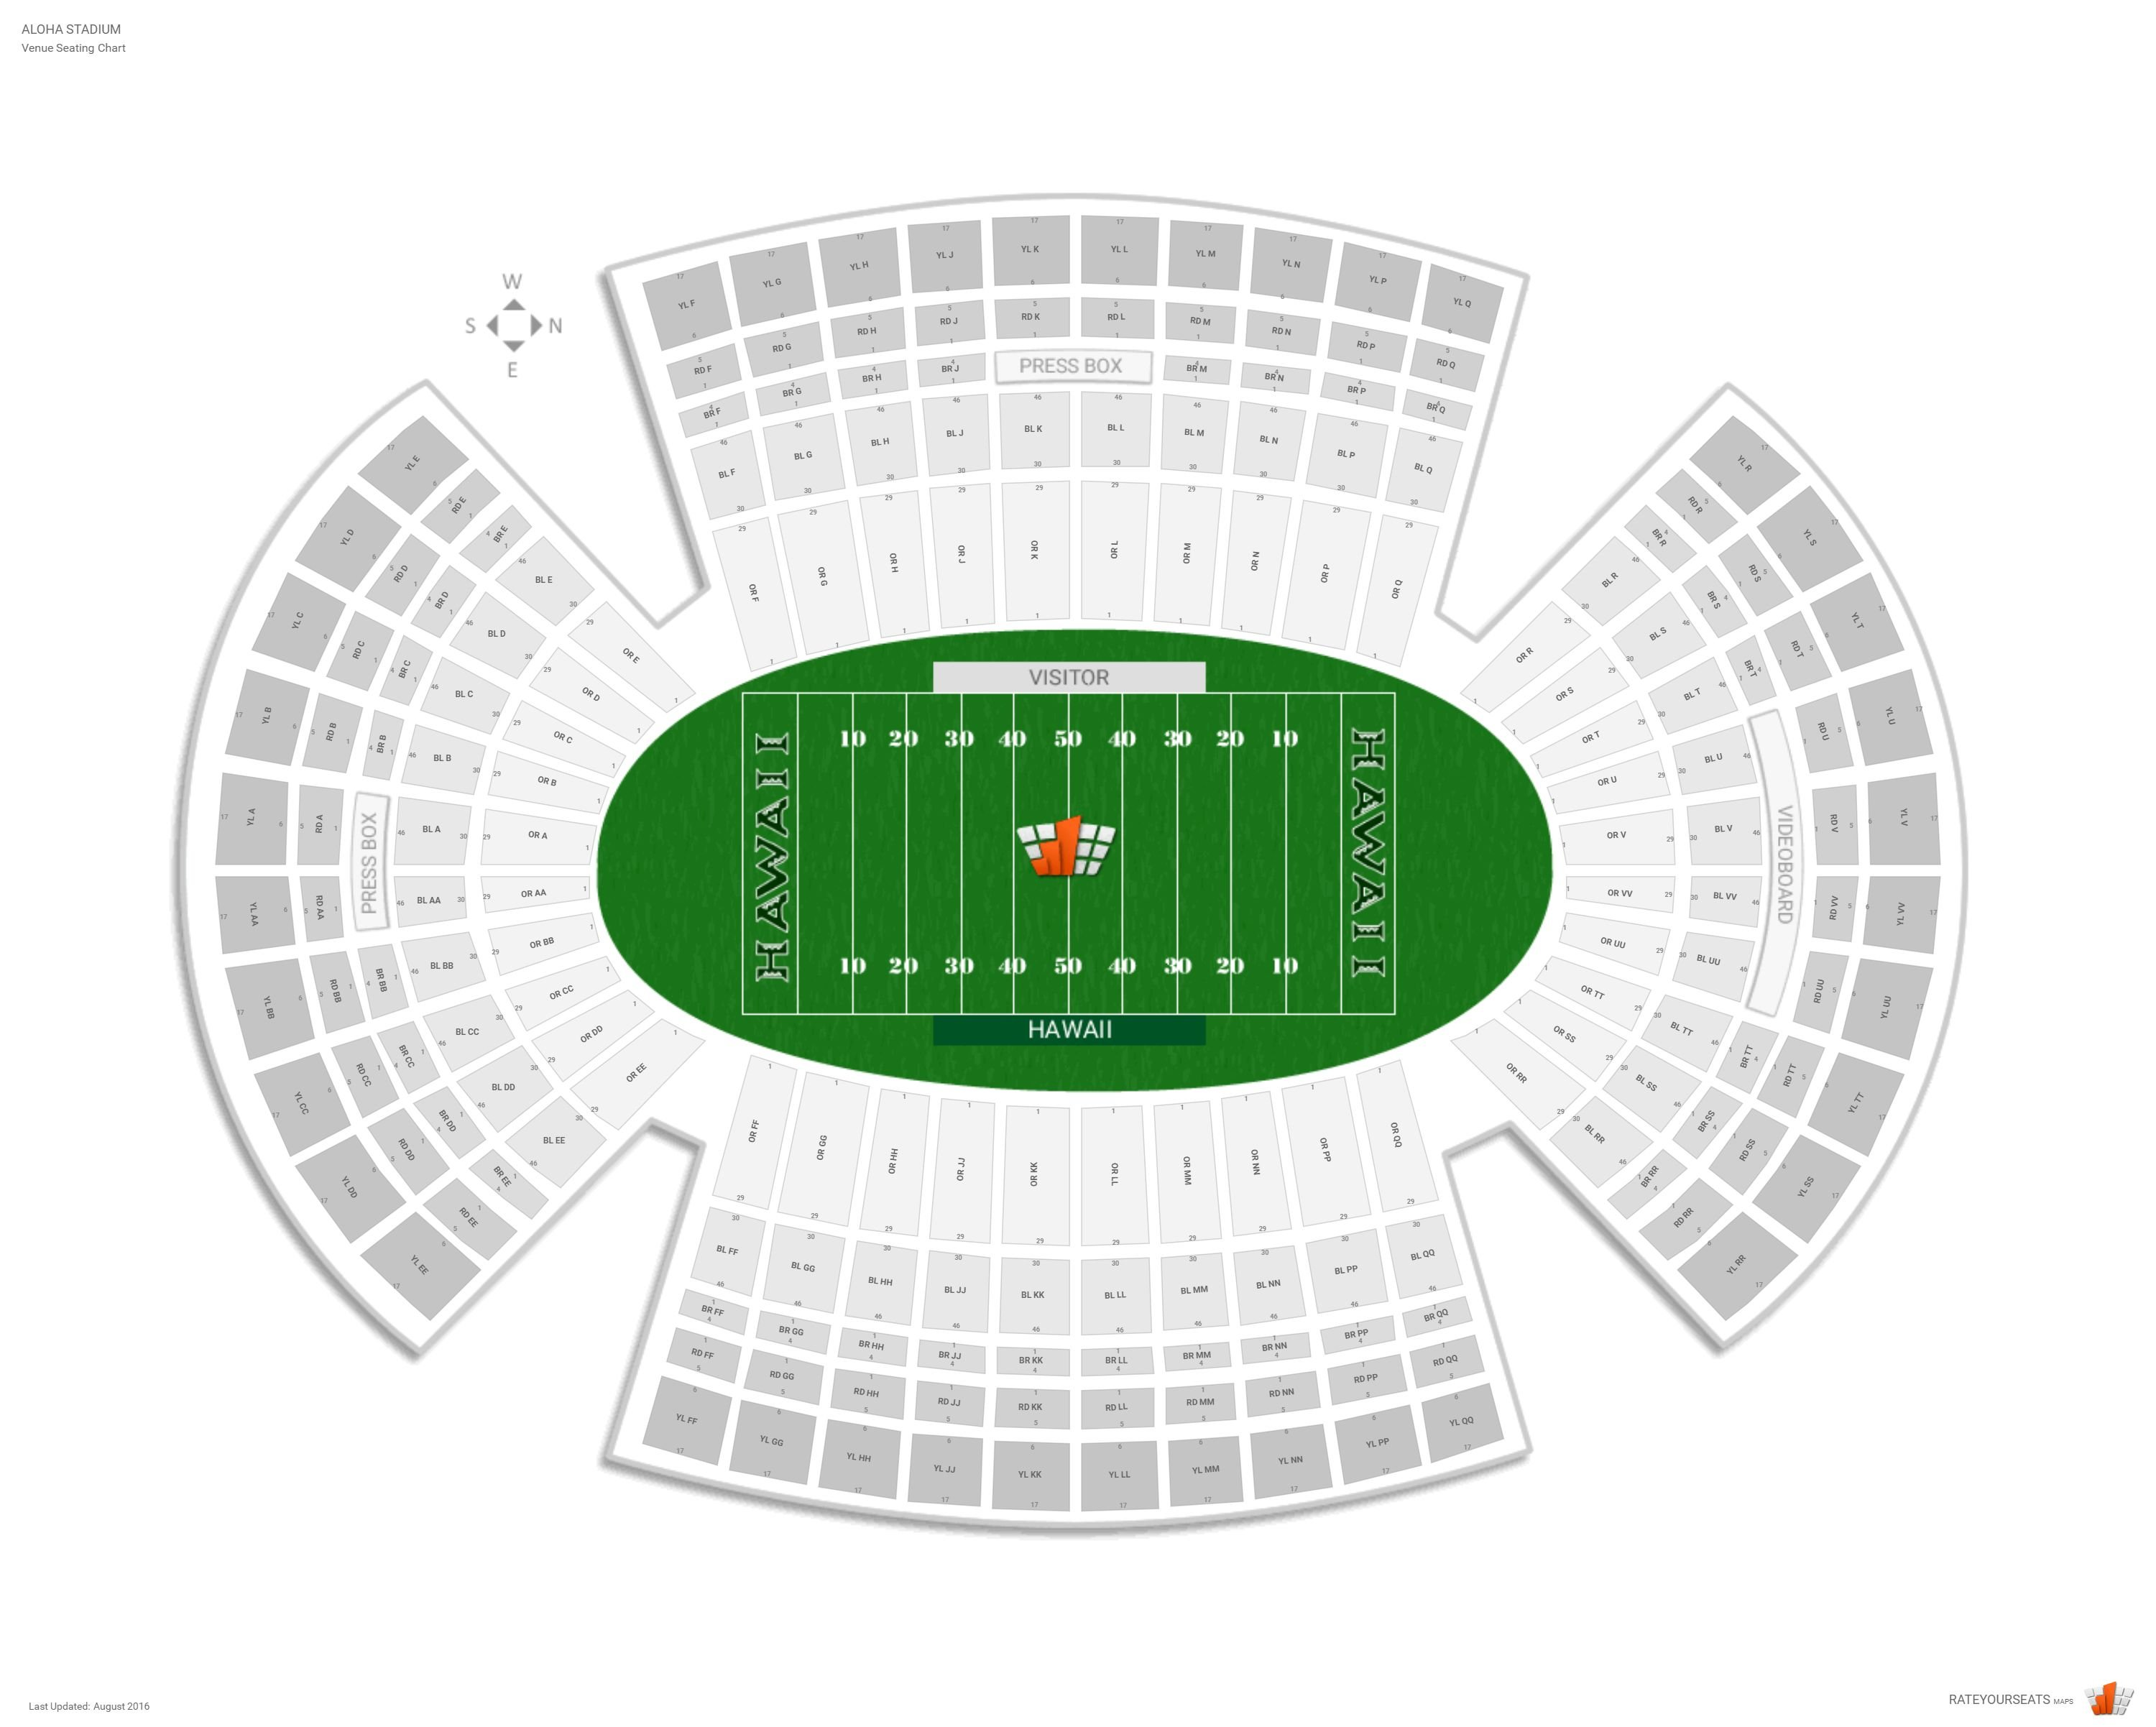 Aloha Stadium (Hawaii) Seating Guide - RateYourSeats com